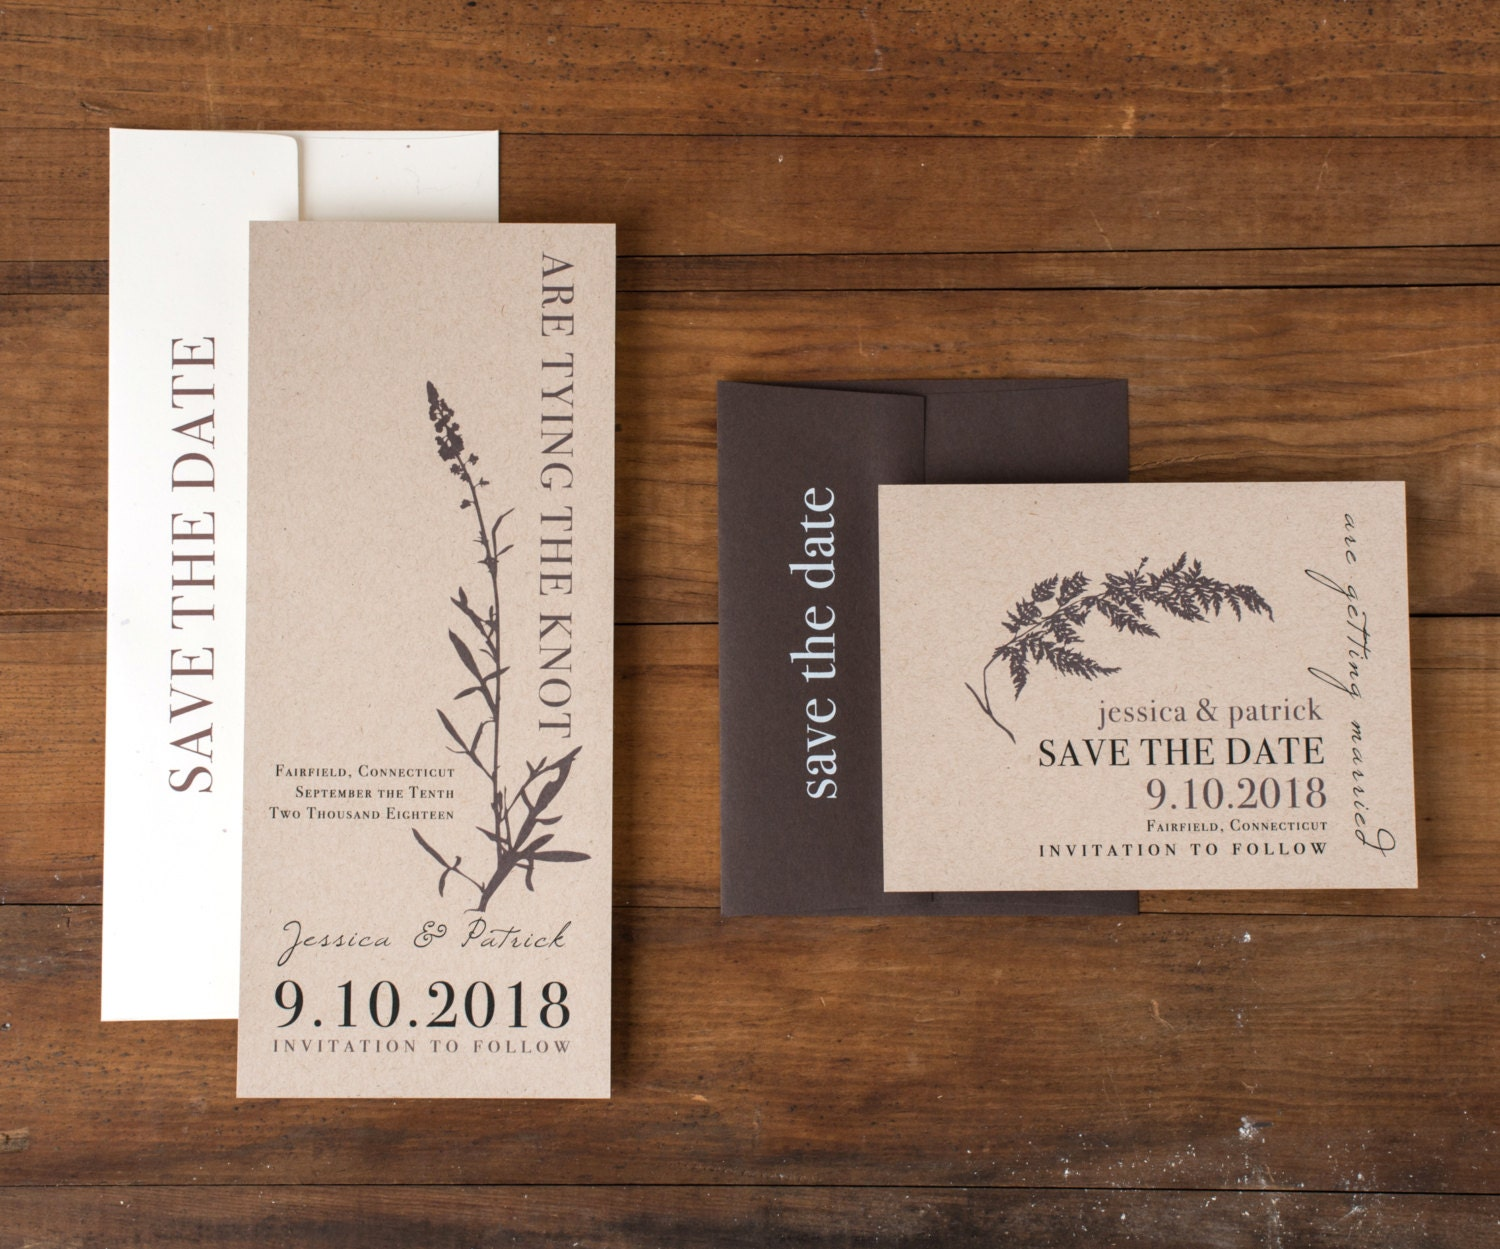 Wedding Save The Date Postcards: Rustic Save The Dates Rustic Wedding Save The Date Cards